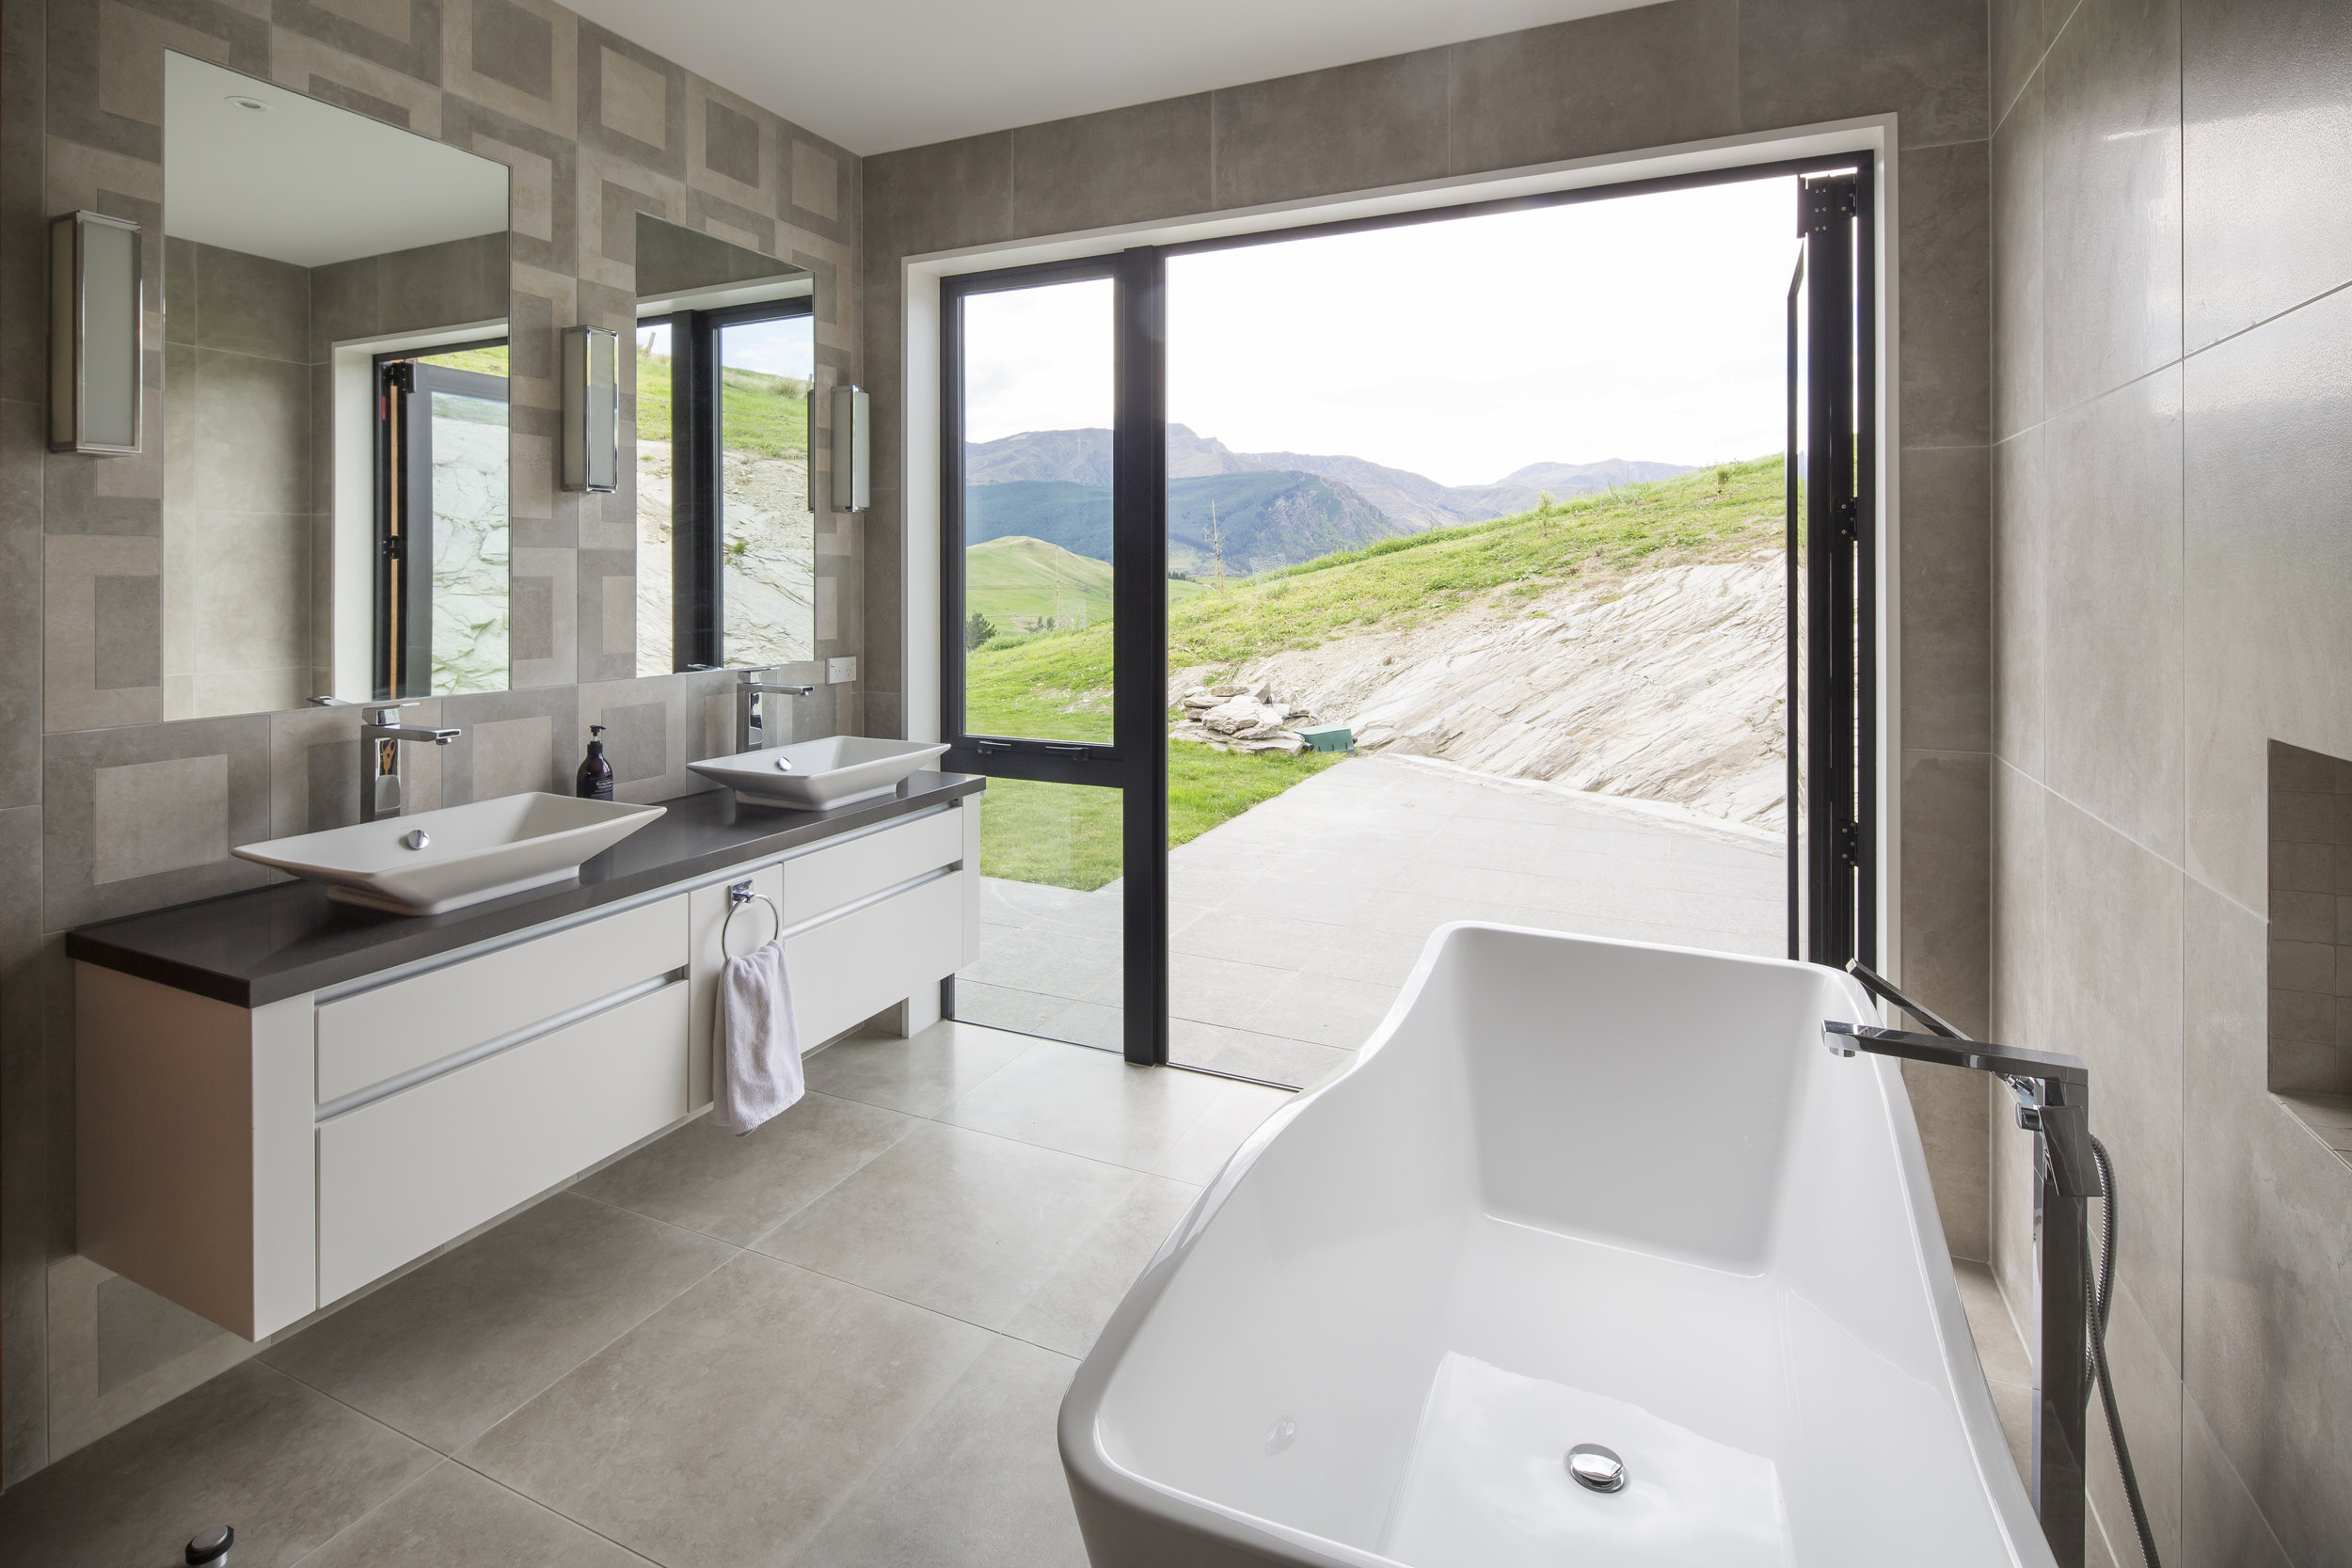 Interior fittings had to complement, not overtake the breath taking views of Coronet Peak and surrounding mountains